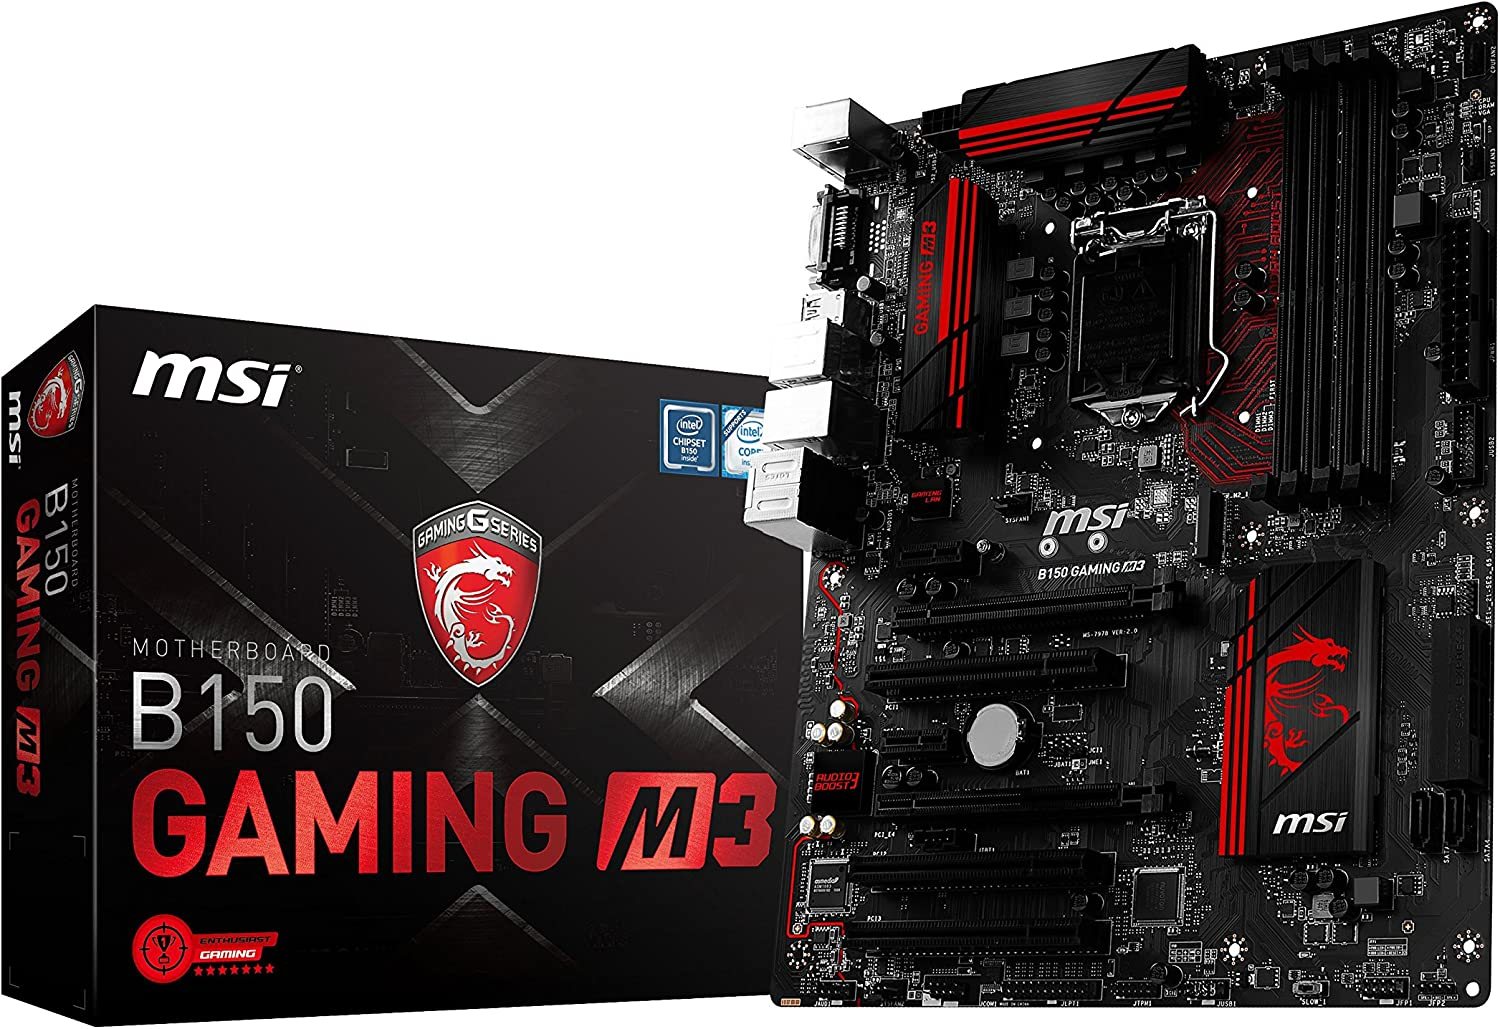 MSI Gaming Intel Skylake B150 LGA 1151 DDR4 USB 3.1 ATX Motherboard (B150 Gaming M3)